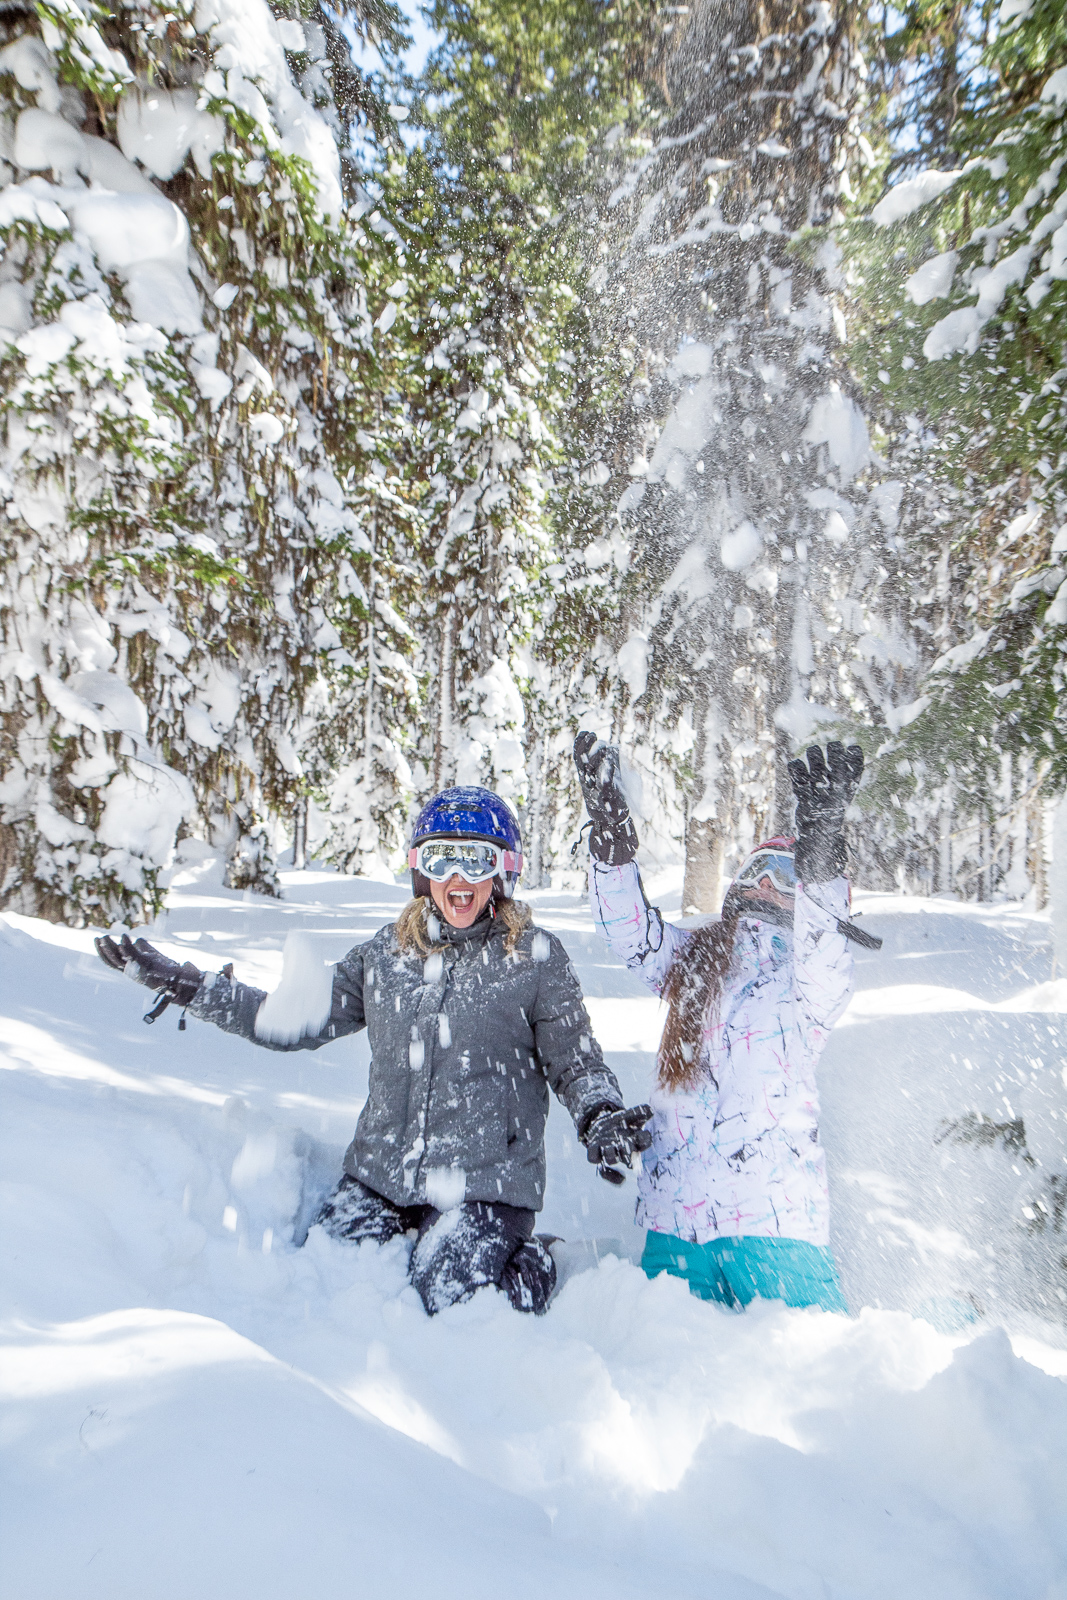 Things to do besides ski in Steamboat Springs, CO.